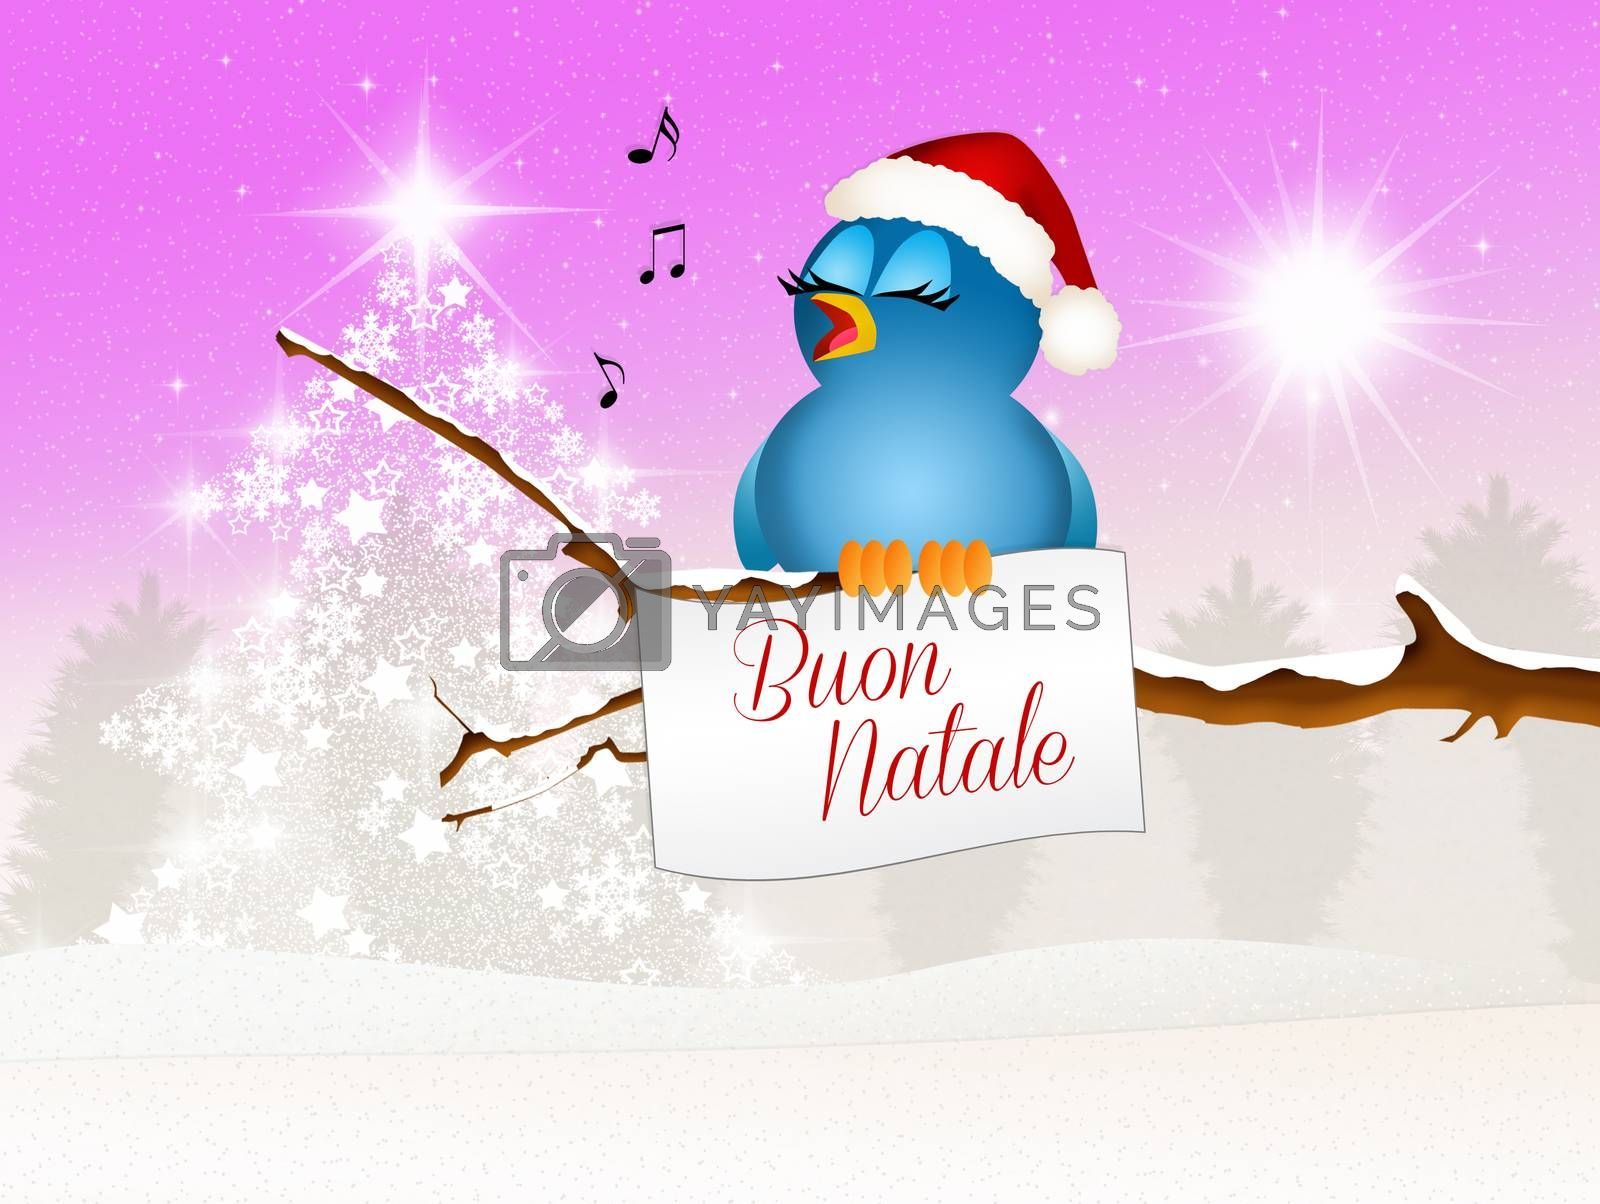 Bird at Christmas